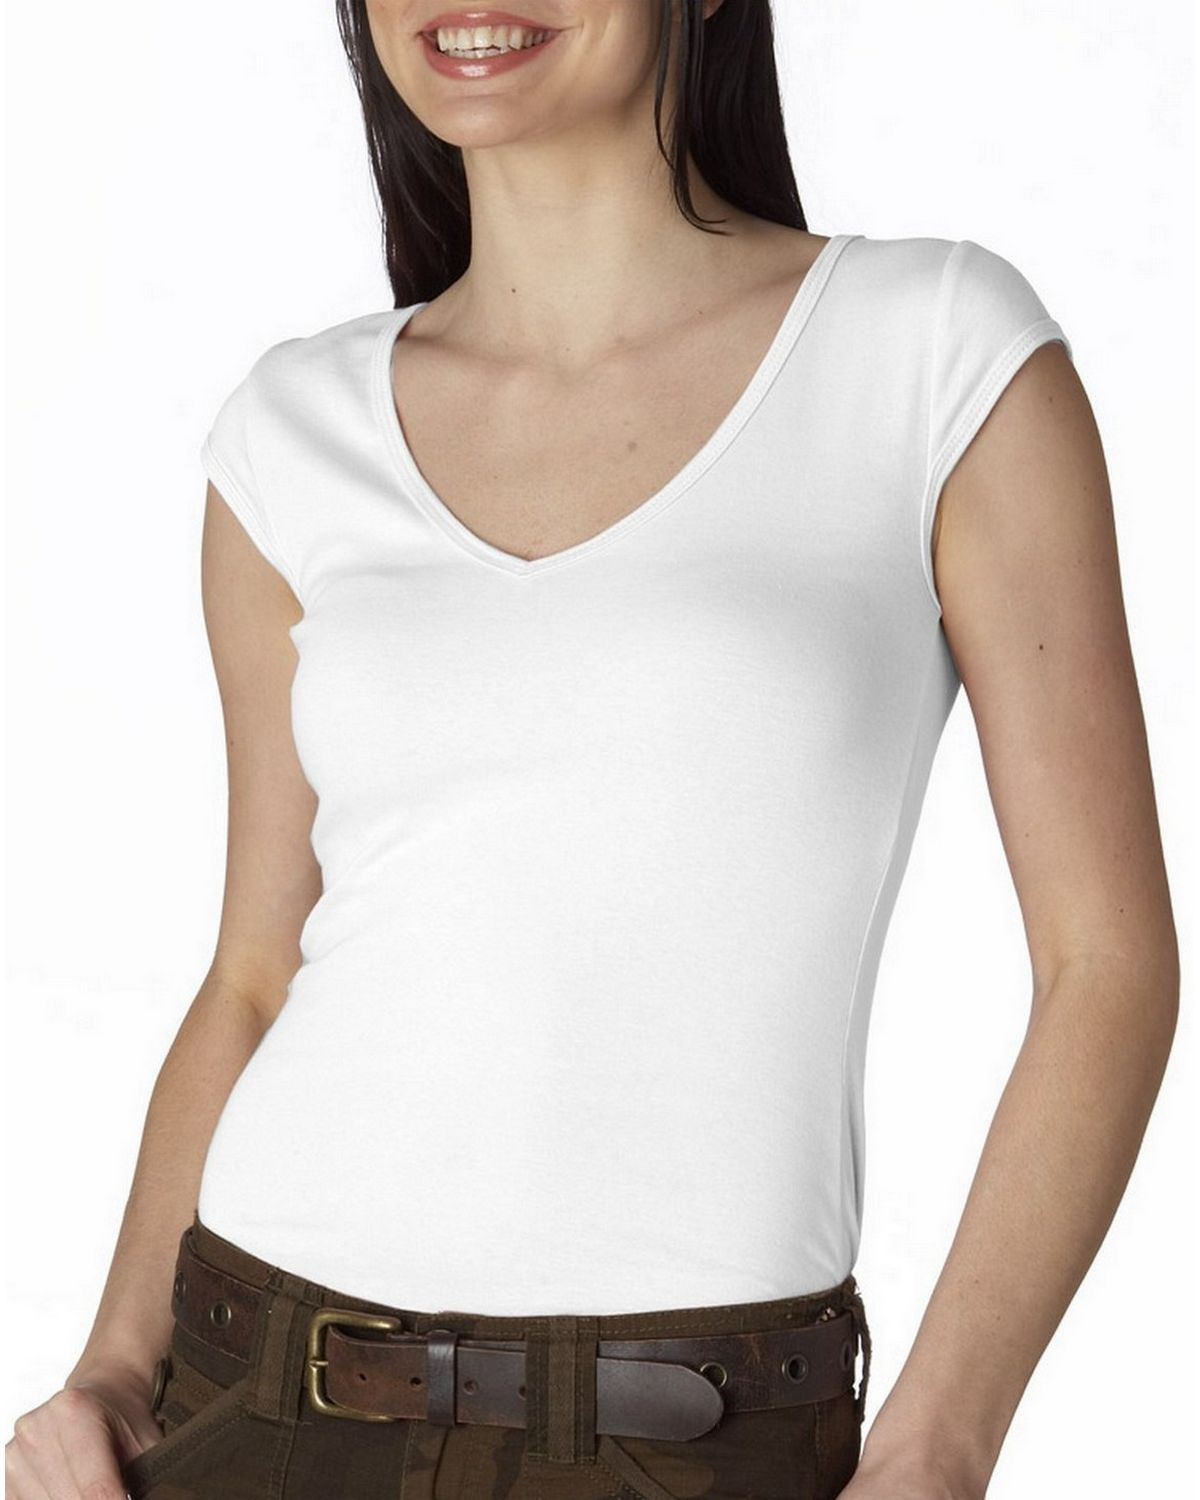 Bella + Canvas 8705 Sheer Rib V-Neck Tee - White - XL 8705